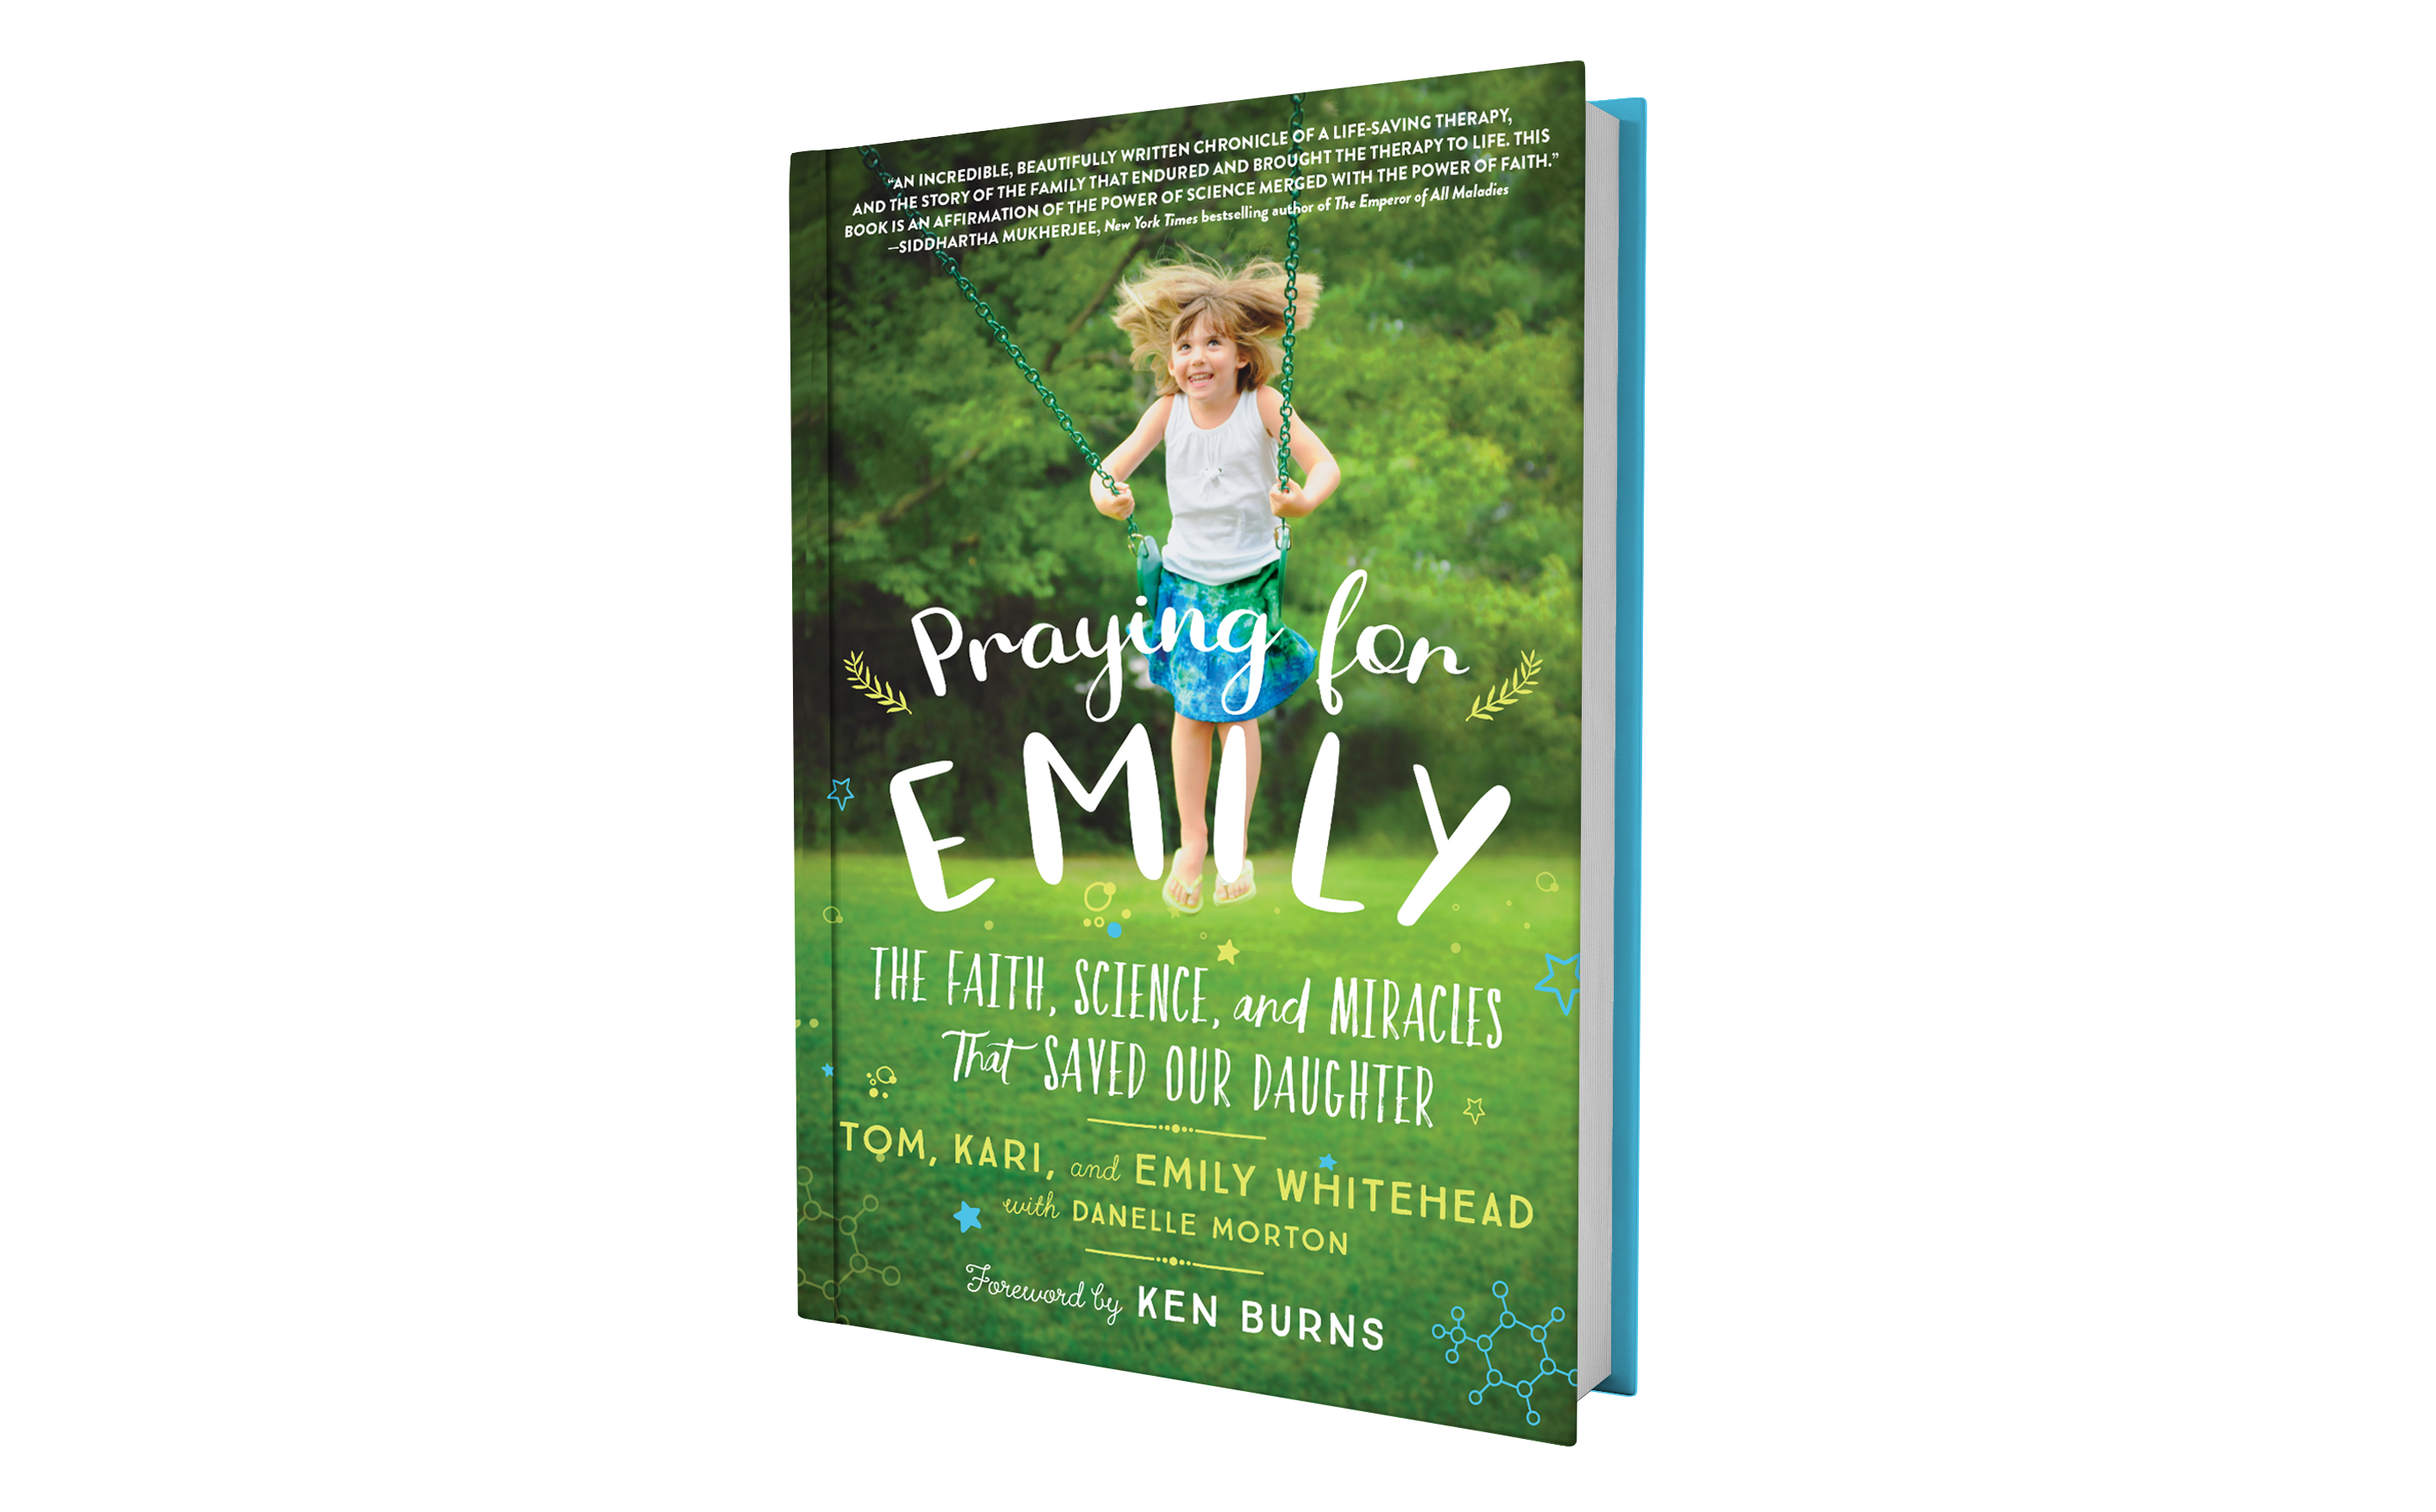 This is a photo of the book called Praying for Emily: The Faith, Science, and Miracles that Saved Our Daughter. The cover shows a little girl swinging on a swing.